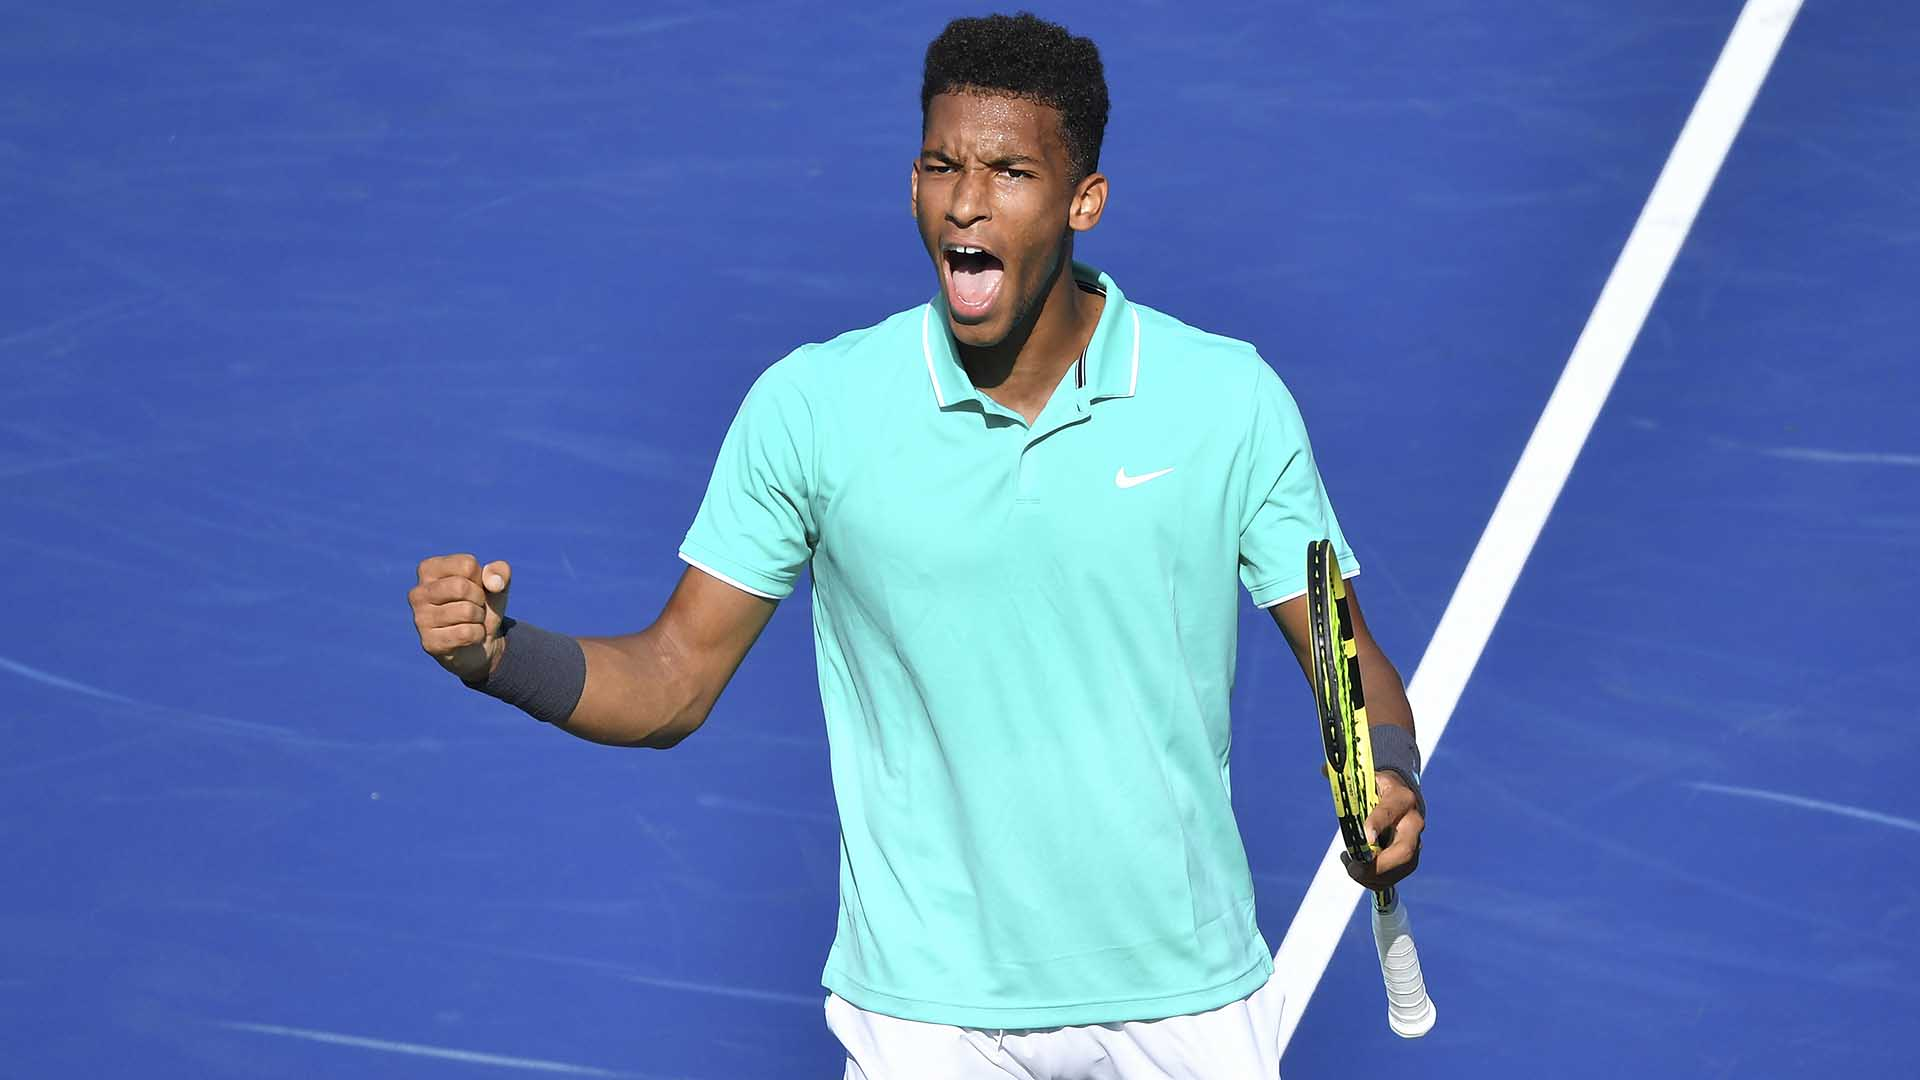 <a href='https://www.atptour.com/en/players/felix-auger-aliassime/ag37/overview'>Felix Auger-Aliassime</a> iplays <a href='https://www.atptour.com/en/players/karen-khachanov/ke29/overview'>Karen Khachanov</a> on Thursday at the <a href='https://www.atptour.com/en/tournaments/montreal/421/overview'>Coupe Rogers</a>, an ATP Masters 1000 tennis tournament in Montreal